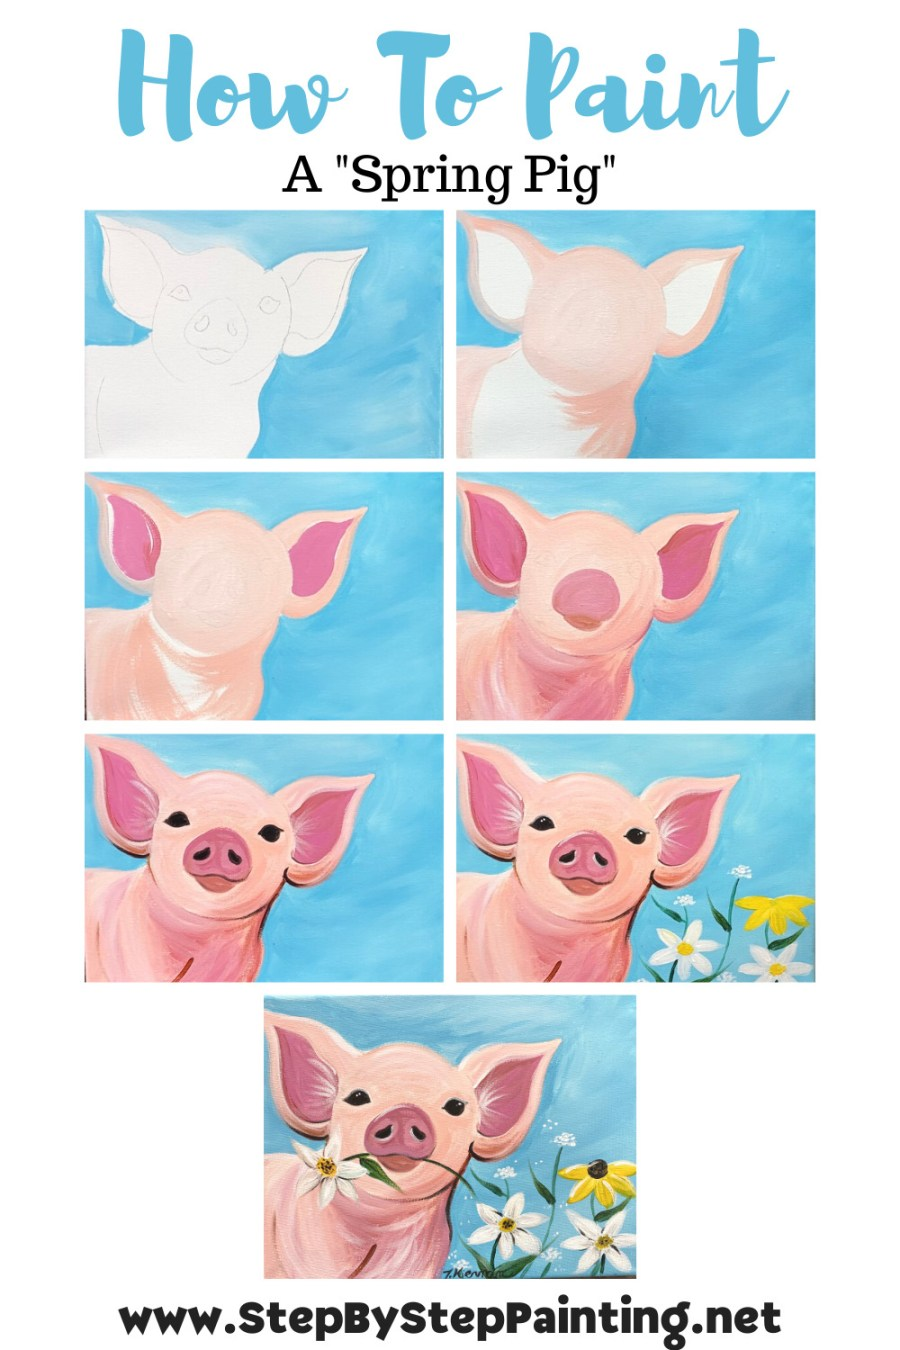 Step by step instructions for how to create a spring pig painting with acrylics.